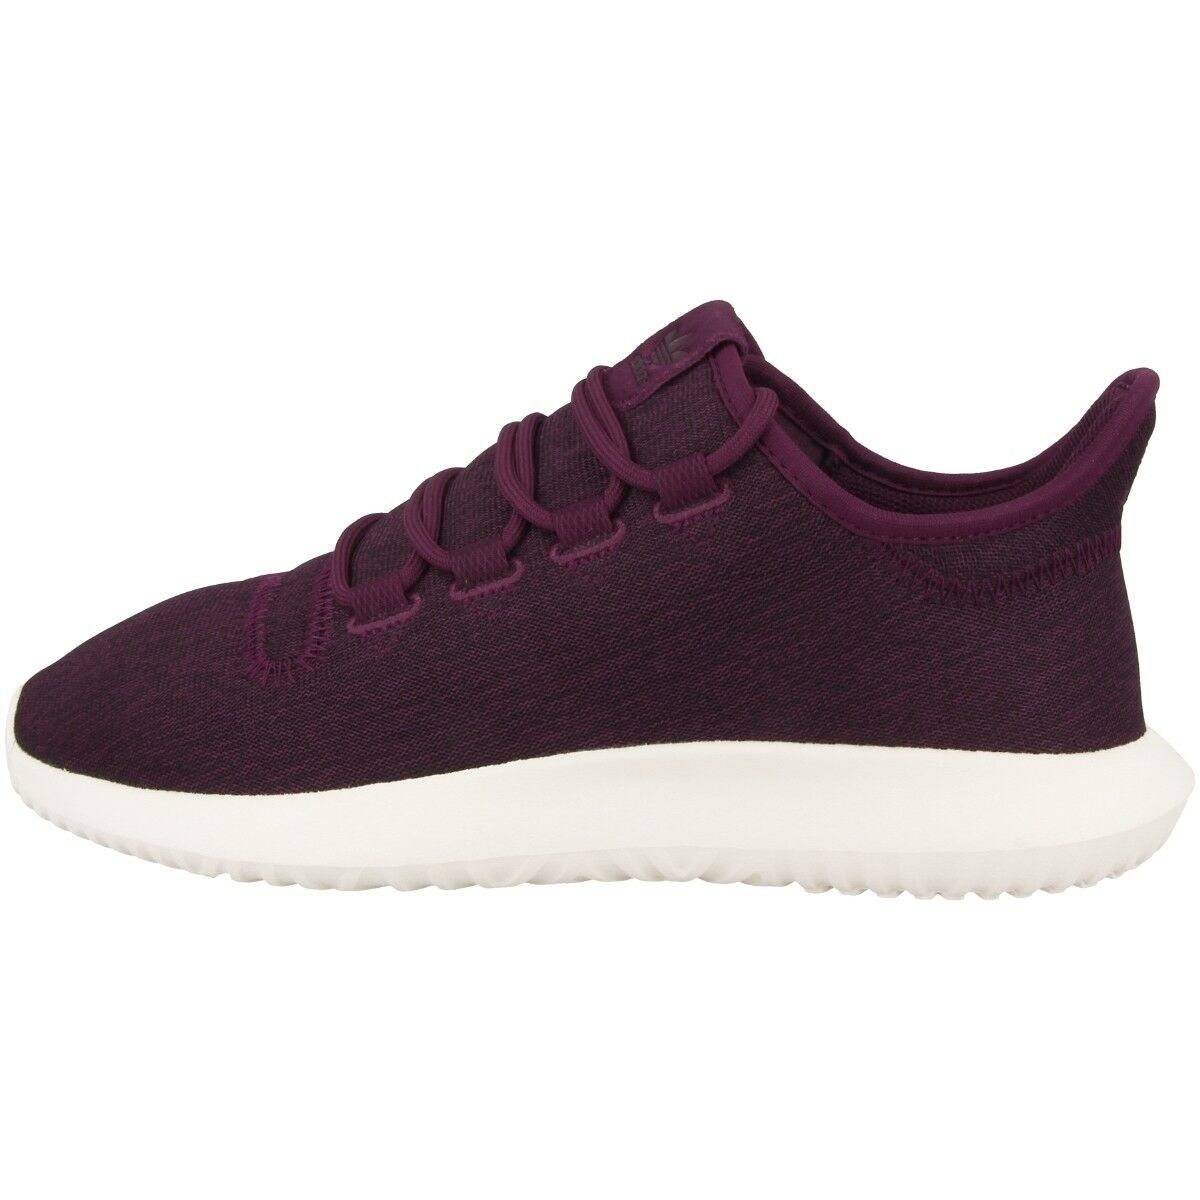 Adidas Tubular Shadow Women's shoes Runner Sneakers Running Maroon White CQ2461